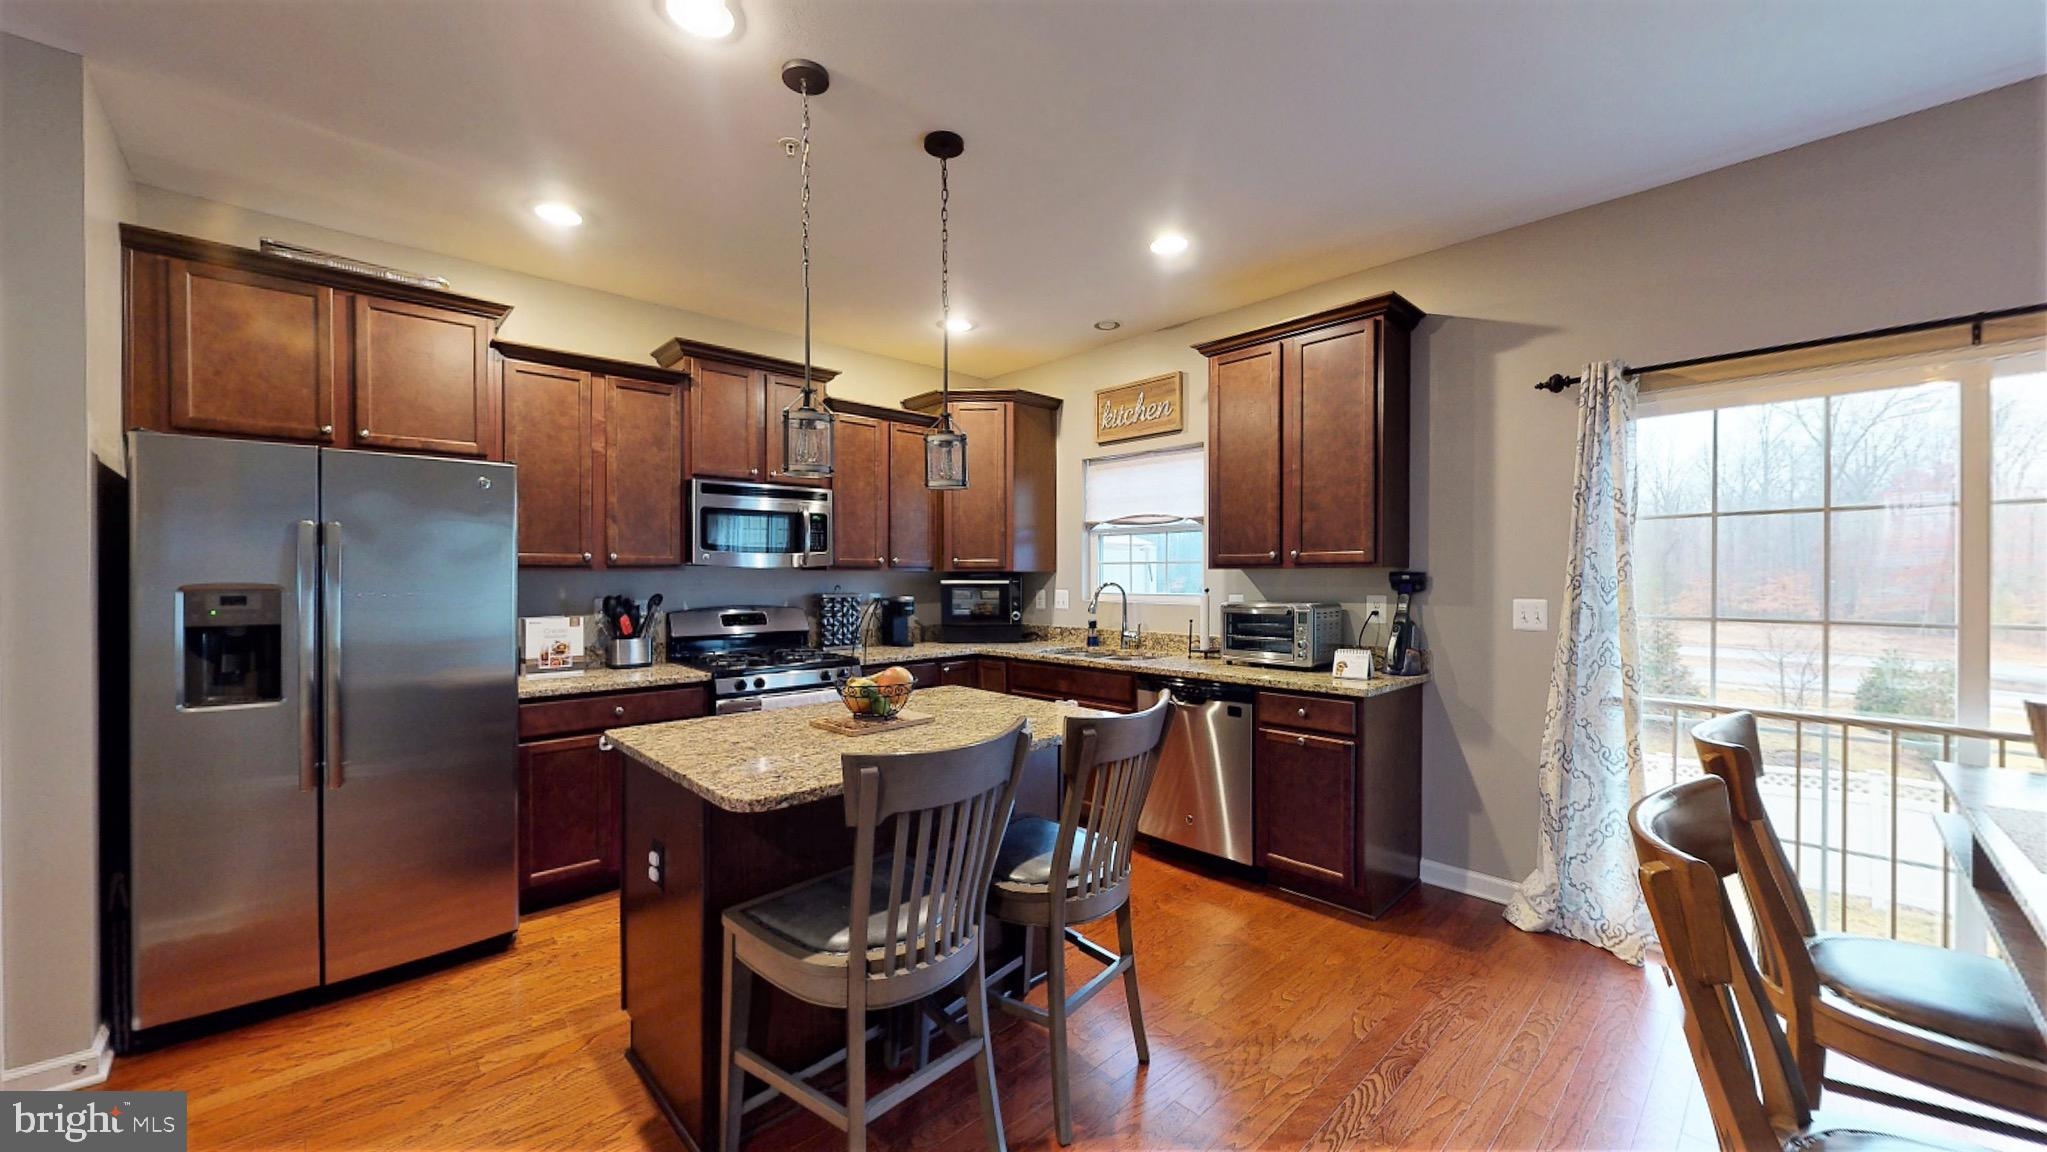 This 3 Bed, 2.5 Bath townhome in White Plains won't last long!  The first level has dual entry from